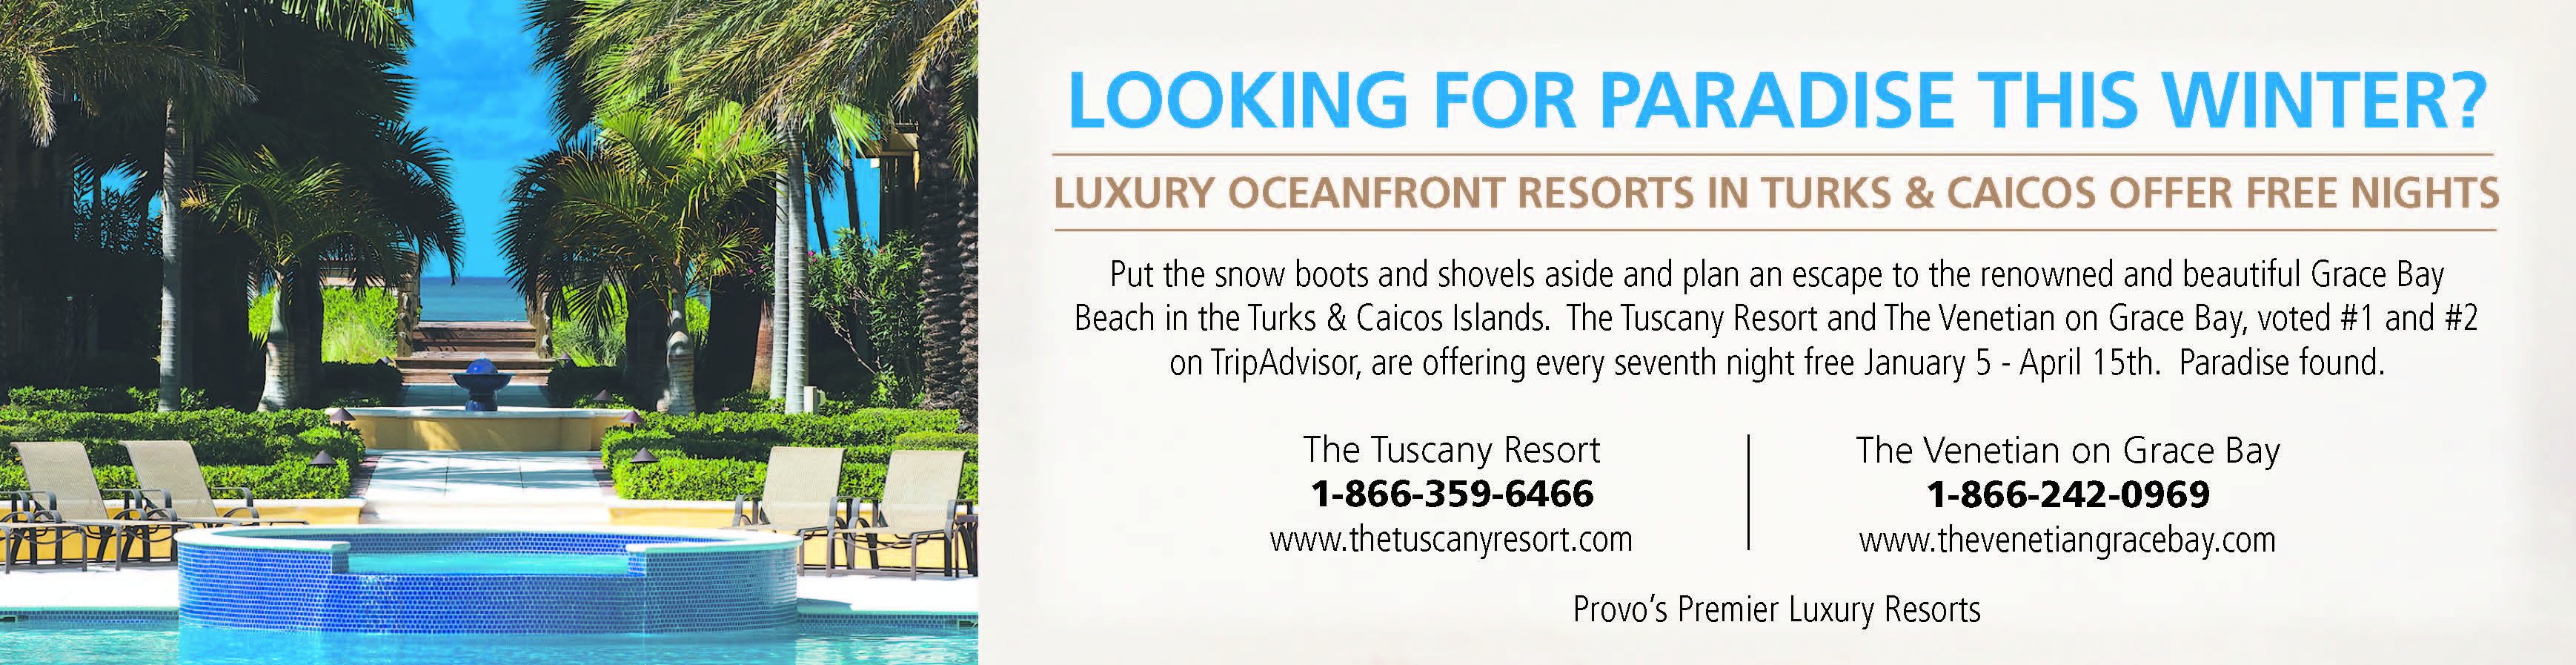 Looking For Paradise This Winter?